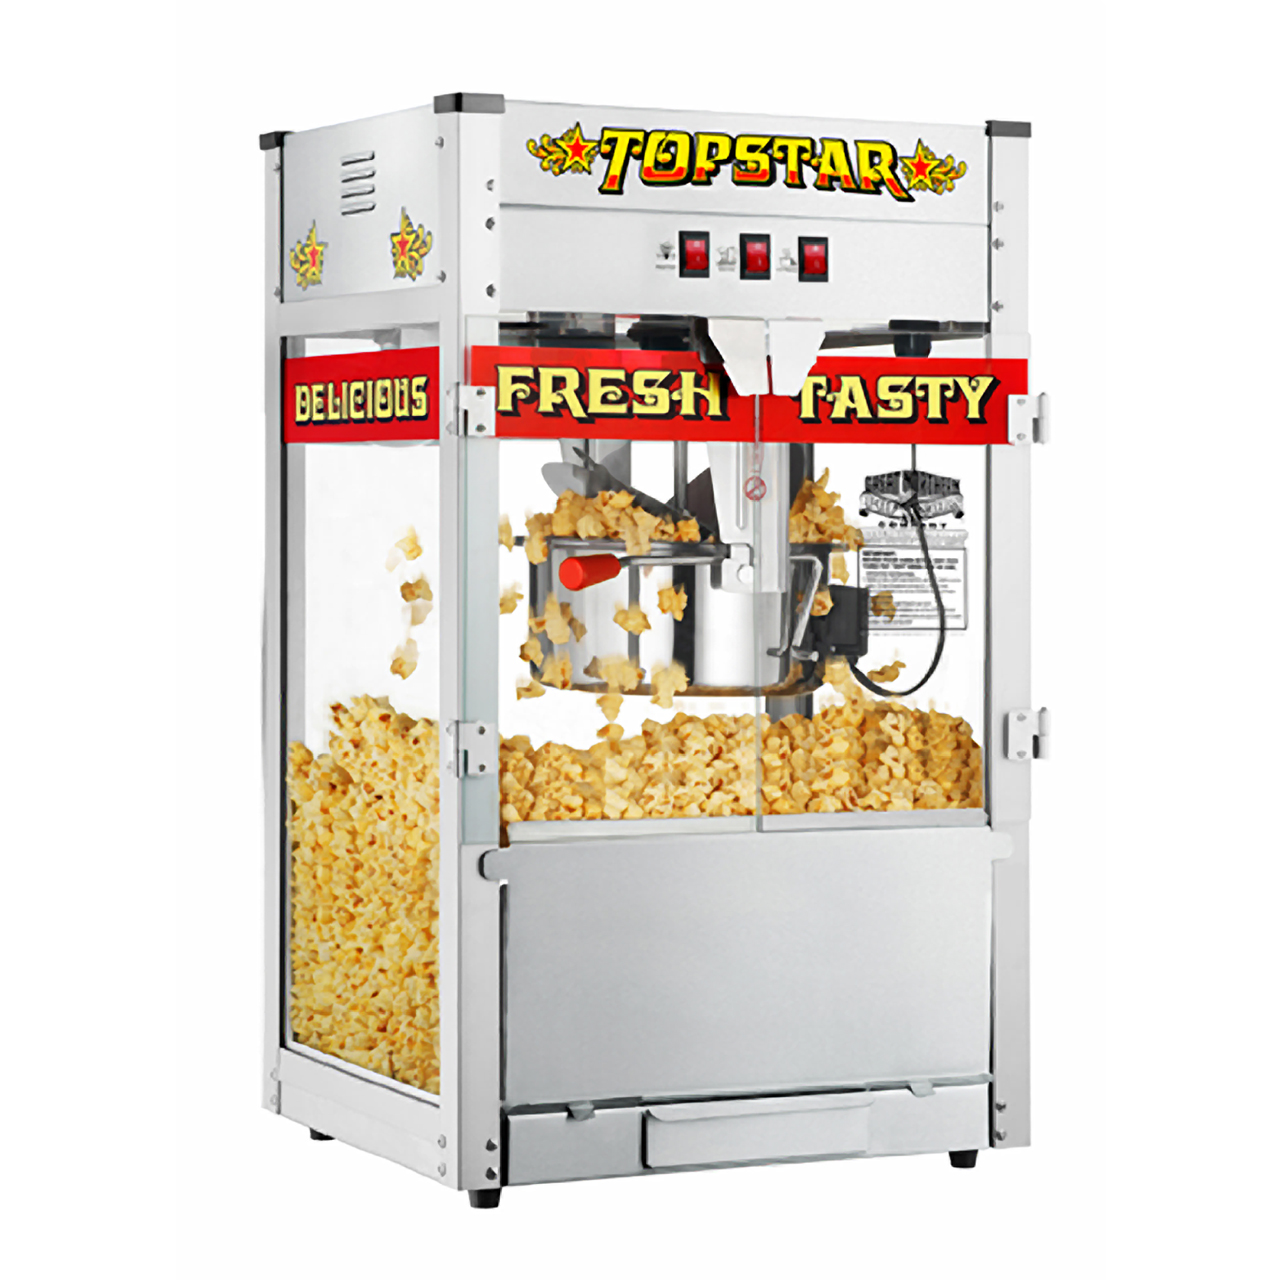 6208 topstar twelve oz popcorn machine__1 12 ounce replacement popcorn kettle for great northern popcorn  at edmiracle.co